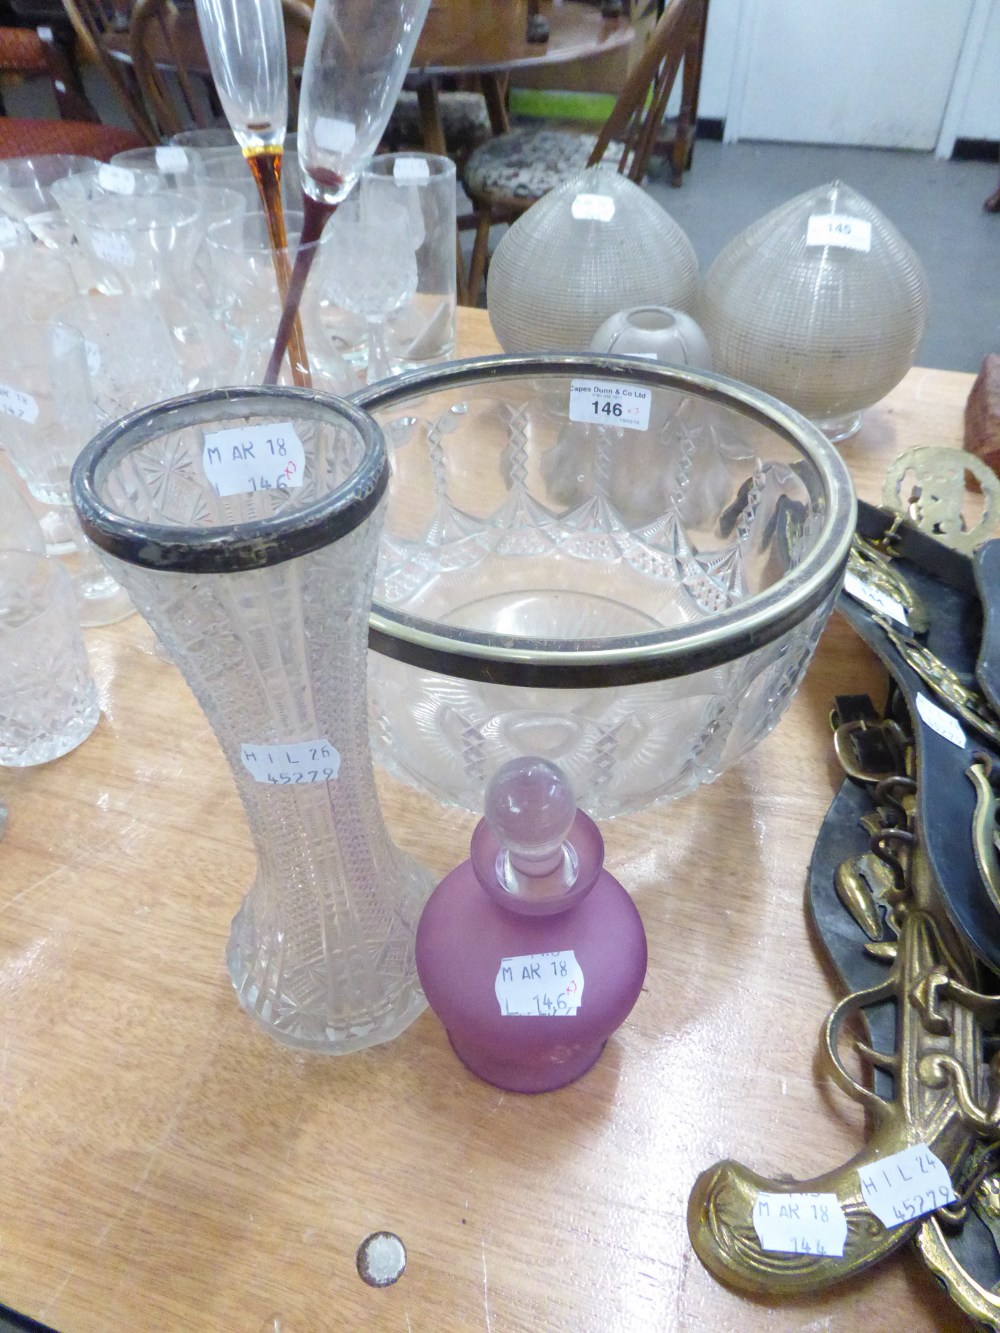 Lot 146 - A CUT GLASS WAISTED CYLINDRICAL FLOWER VASE, WITH SILVER RIM, A CUT GLASS PERFUME ATOMIZER AND A